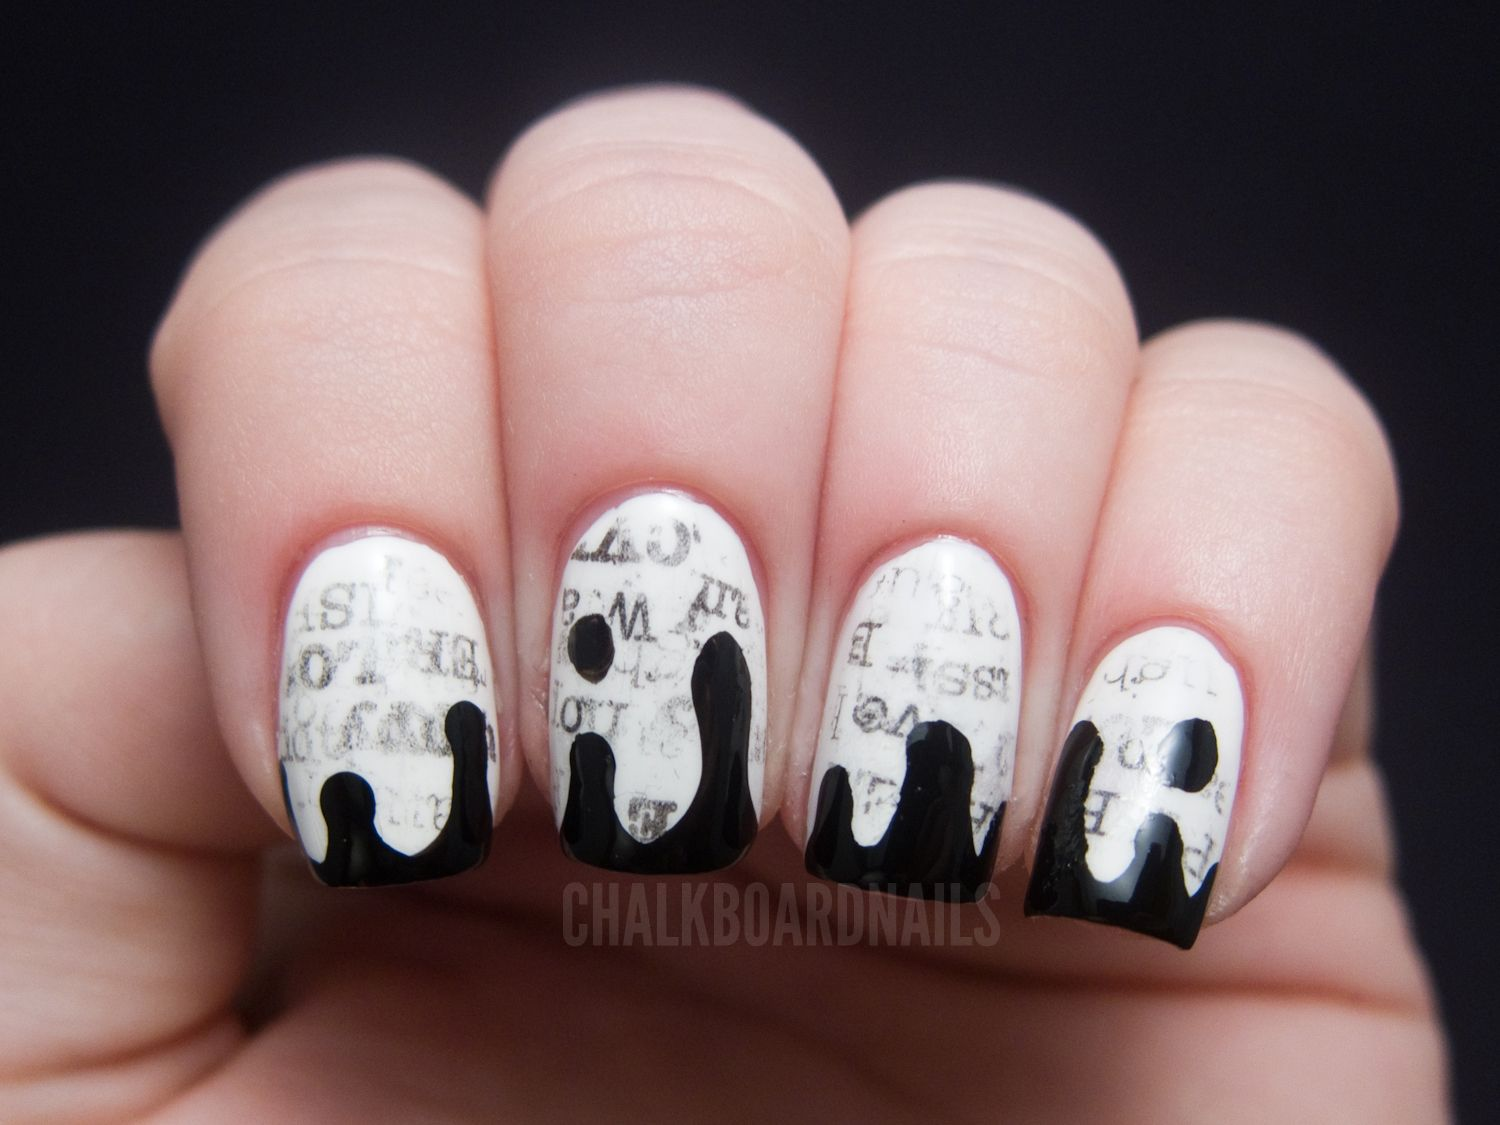 The New Black Typography Set - Daily News | Chalkboard nails ...